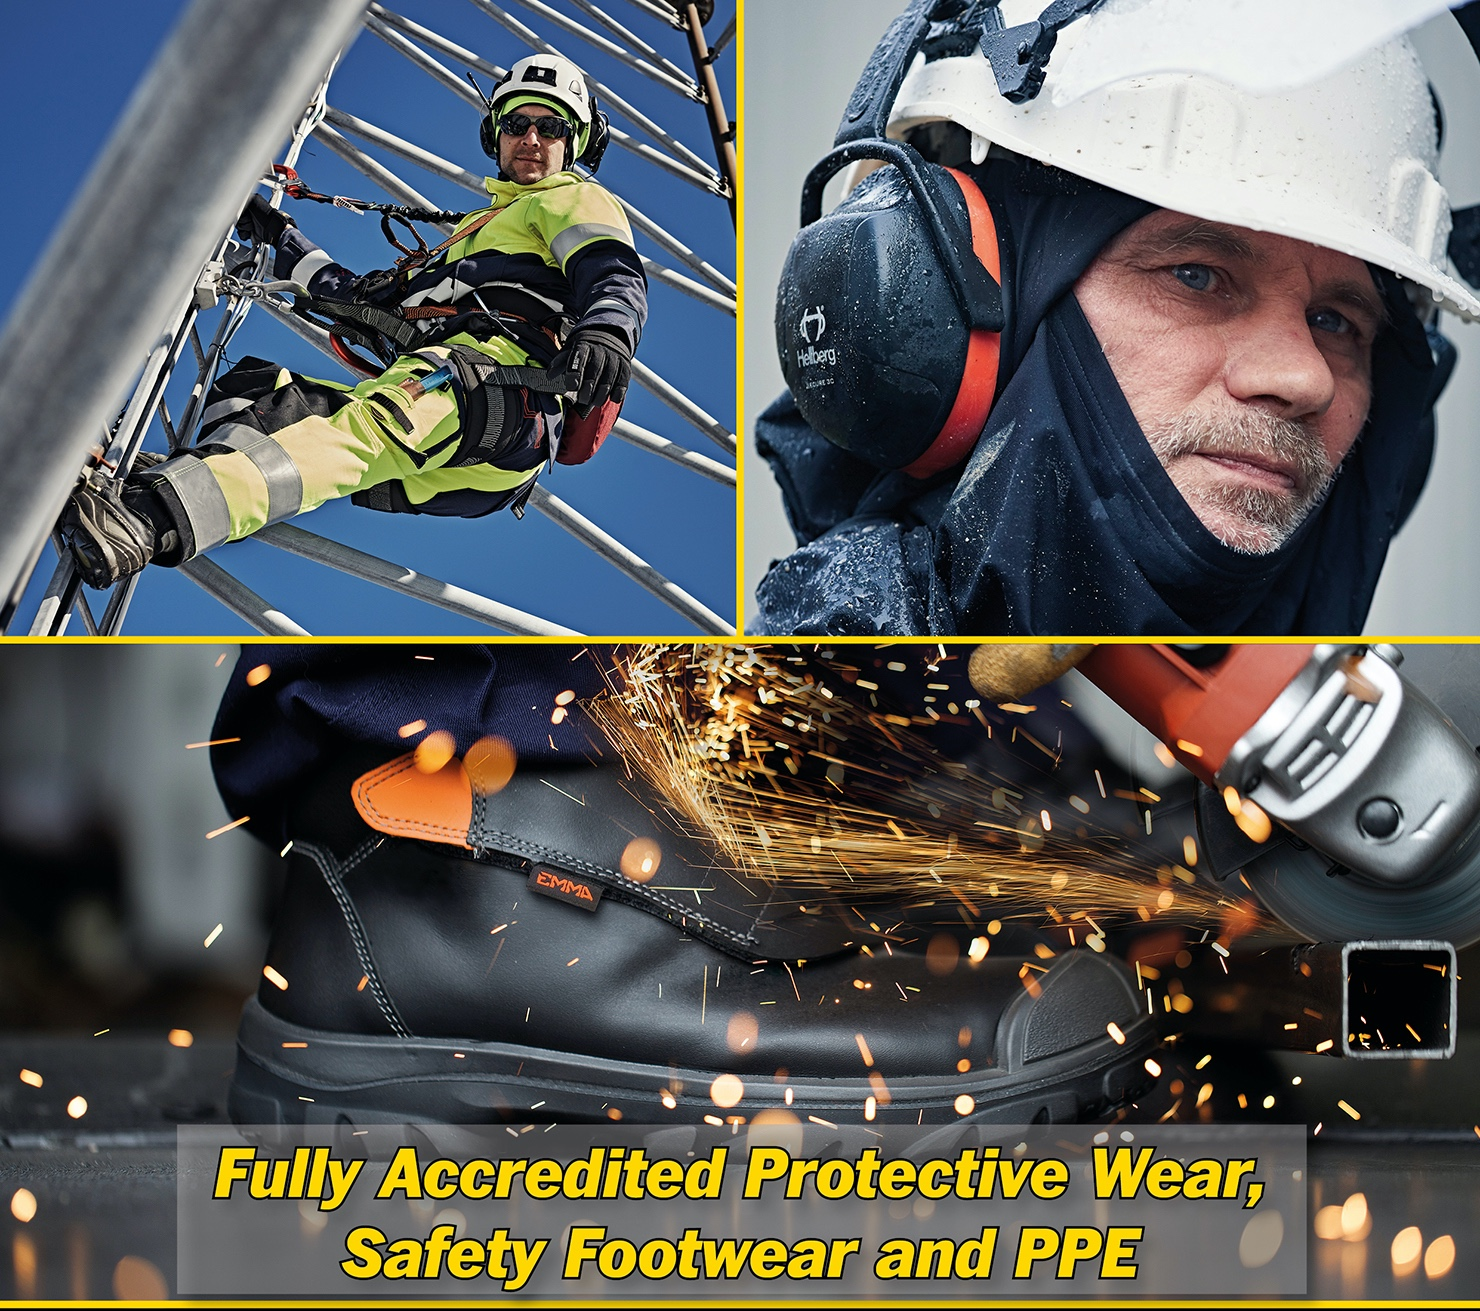 They join Snickers Workwear in Europe's market-leading portfolio of Protective Wear and PPE brands. The Hultafors Group has completed the acquisition of the Fristads, Kansas and Leijona protective wear brands following approval by the relevant competition authorities.